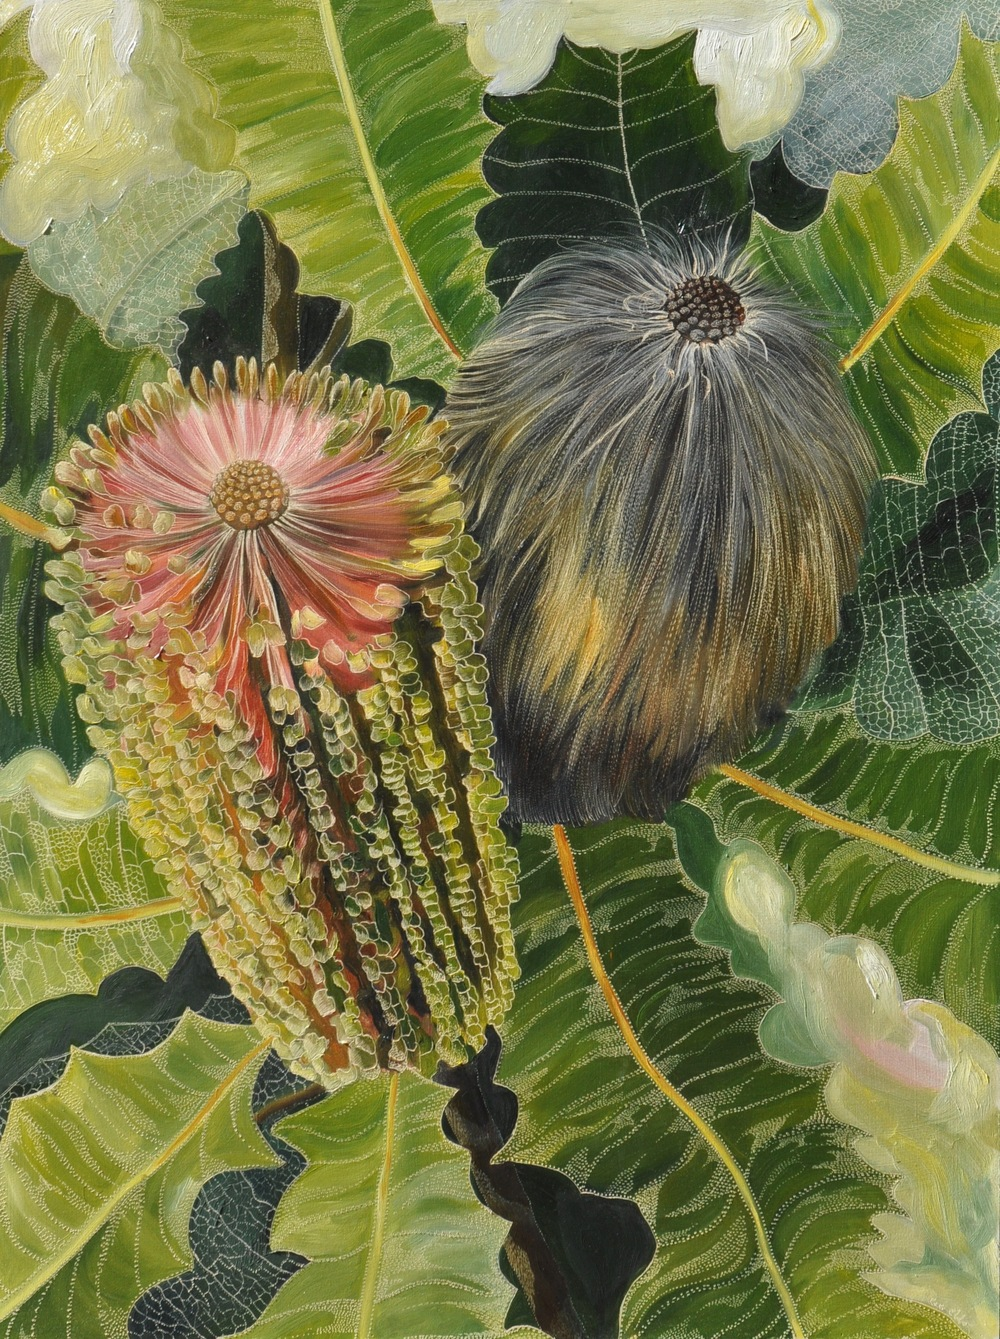 Homage to Banksia Robur Medium: Oil on board carved  Dimensions: 1209 x 90 cm